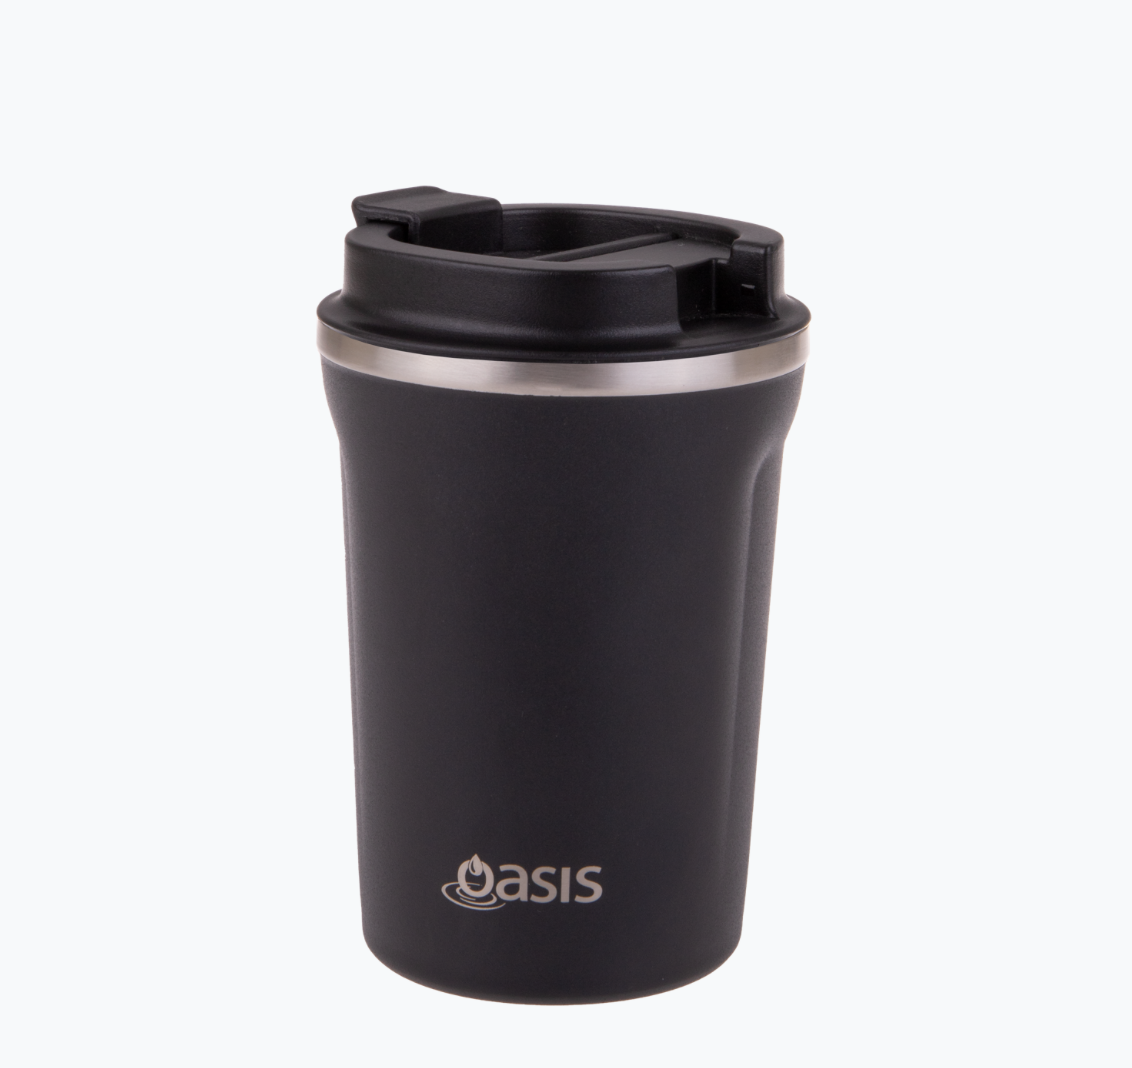 Oasis 380ml Insulated Coffee Cup Black